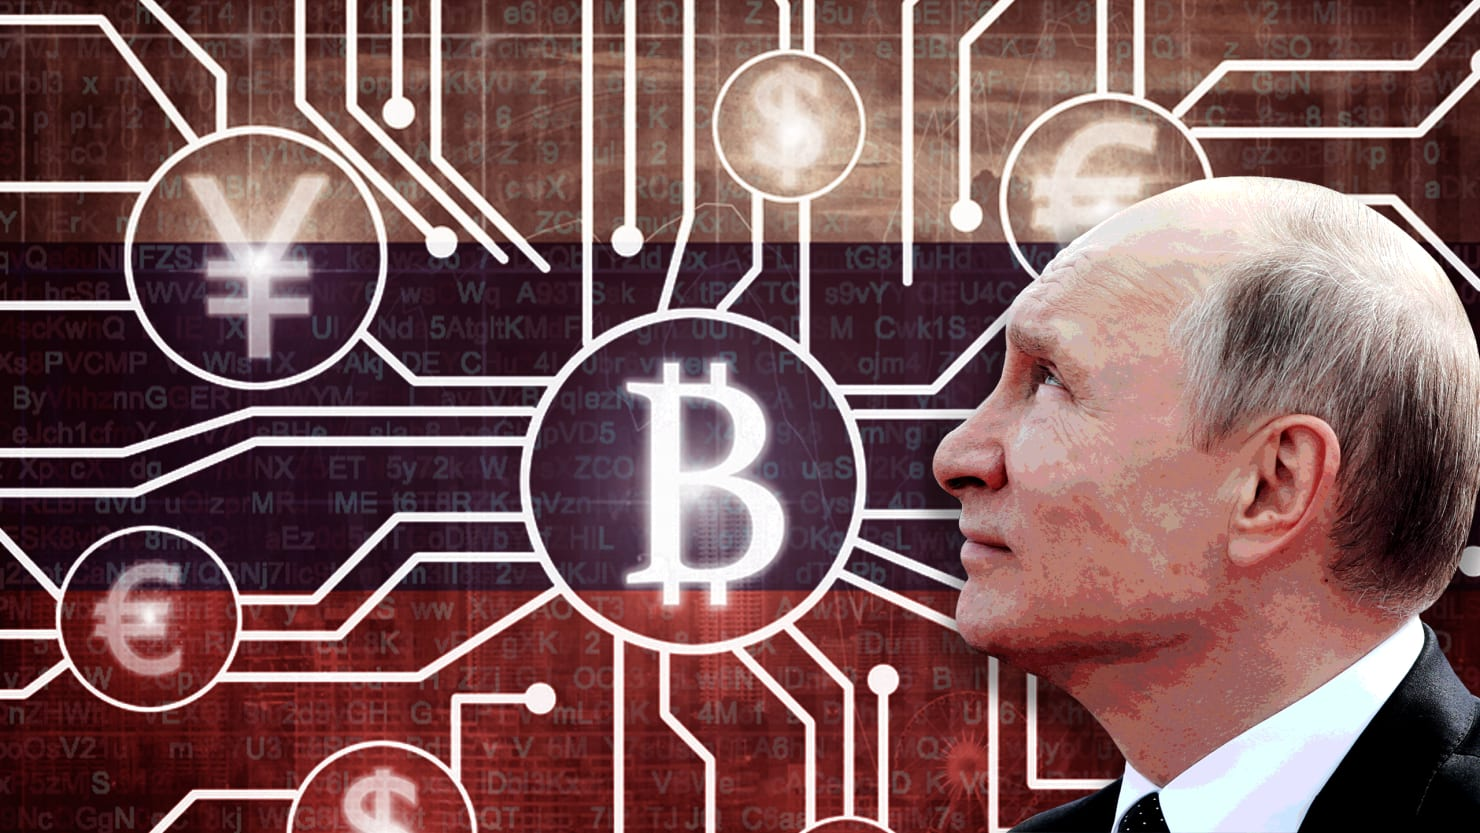 Why Is the Kremlin Suddenly Obsessed With Cryptocurrencies?